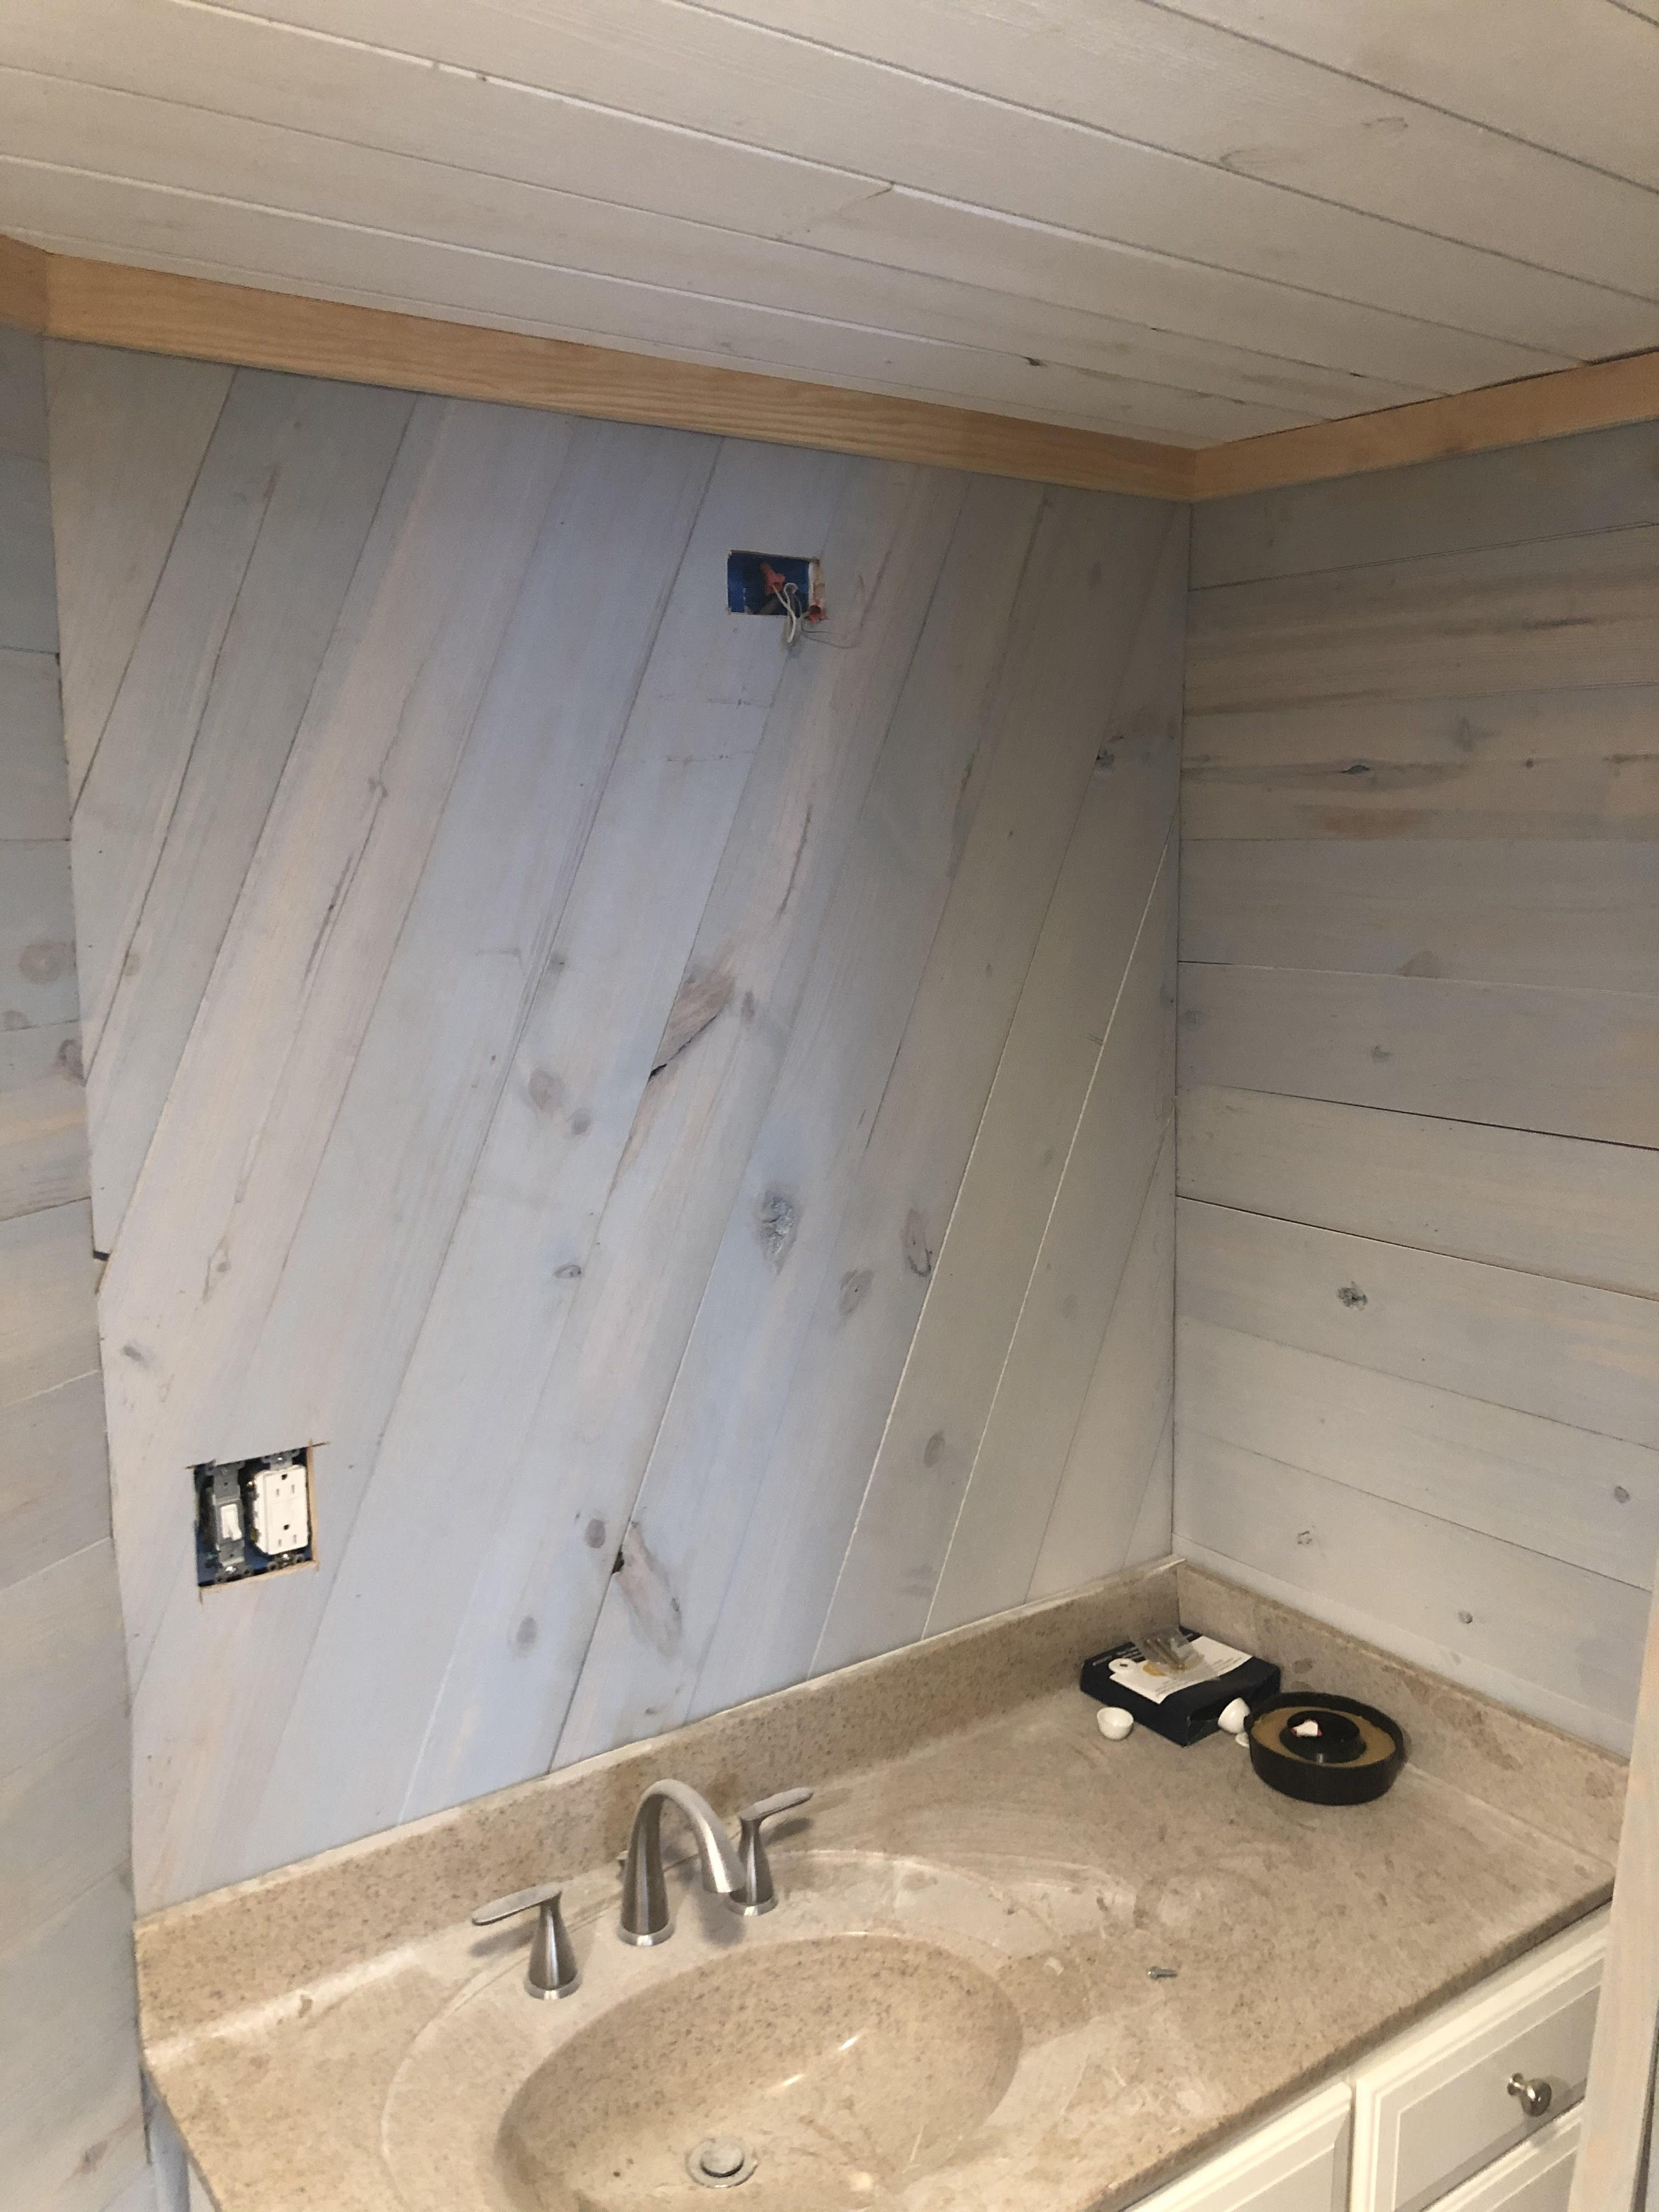 Our Shiplap Material Can Be Used In A Variety Of Ways Just Look At This Beautiful And Creative Install From One Of Ou Shiplap Discount Lumber Shiplap Bathroom